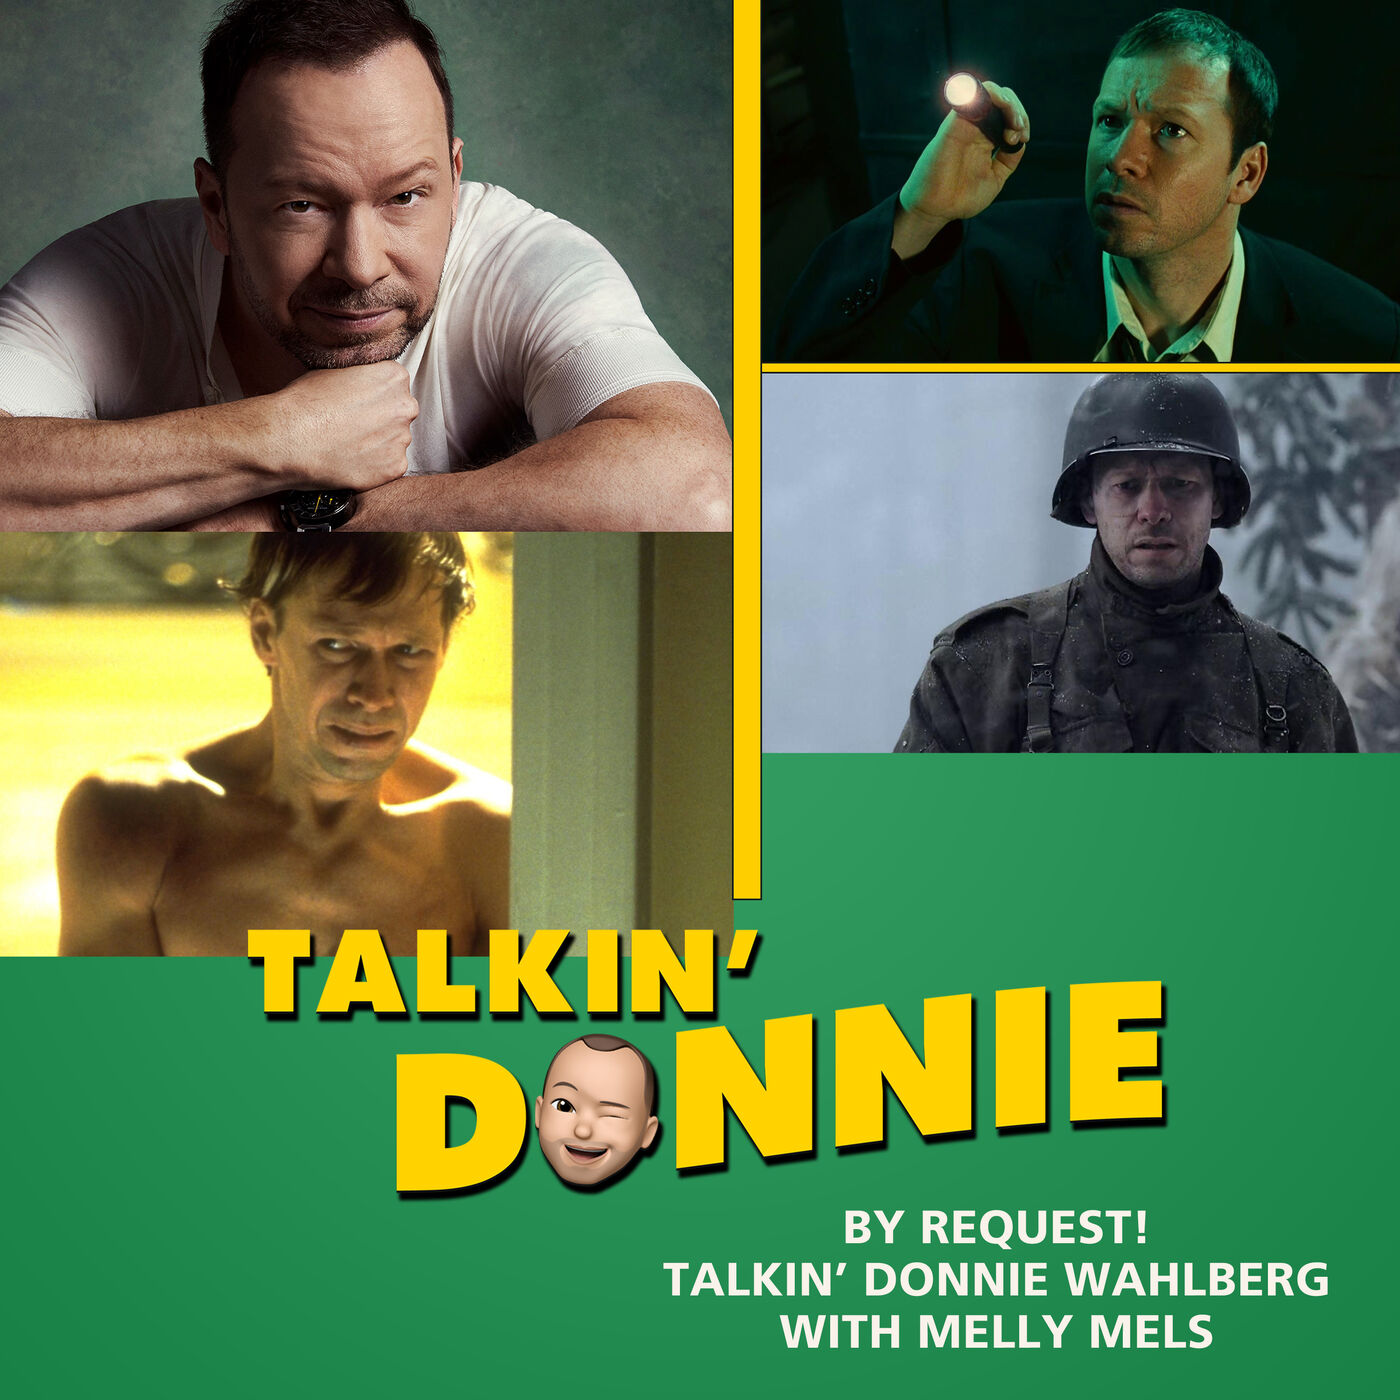 Talkin' Donnie!  By Baloney Nation request, the Donnie Wahlberg episode with Melly Mels!